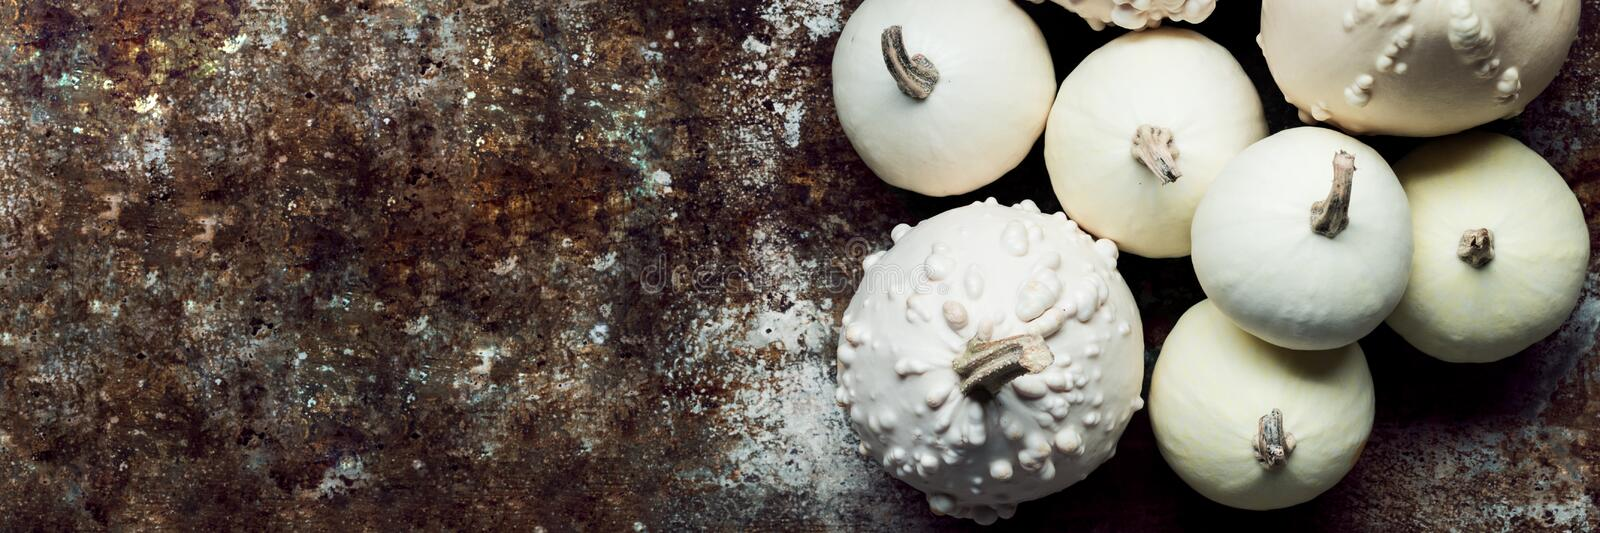 Happy Thanksgiving Banner. Little white pumpkins on rustic metal background with copy space. Autumn Harvest and Holiday minimal still life stock photos